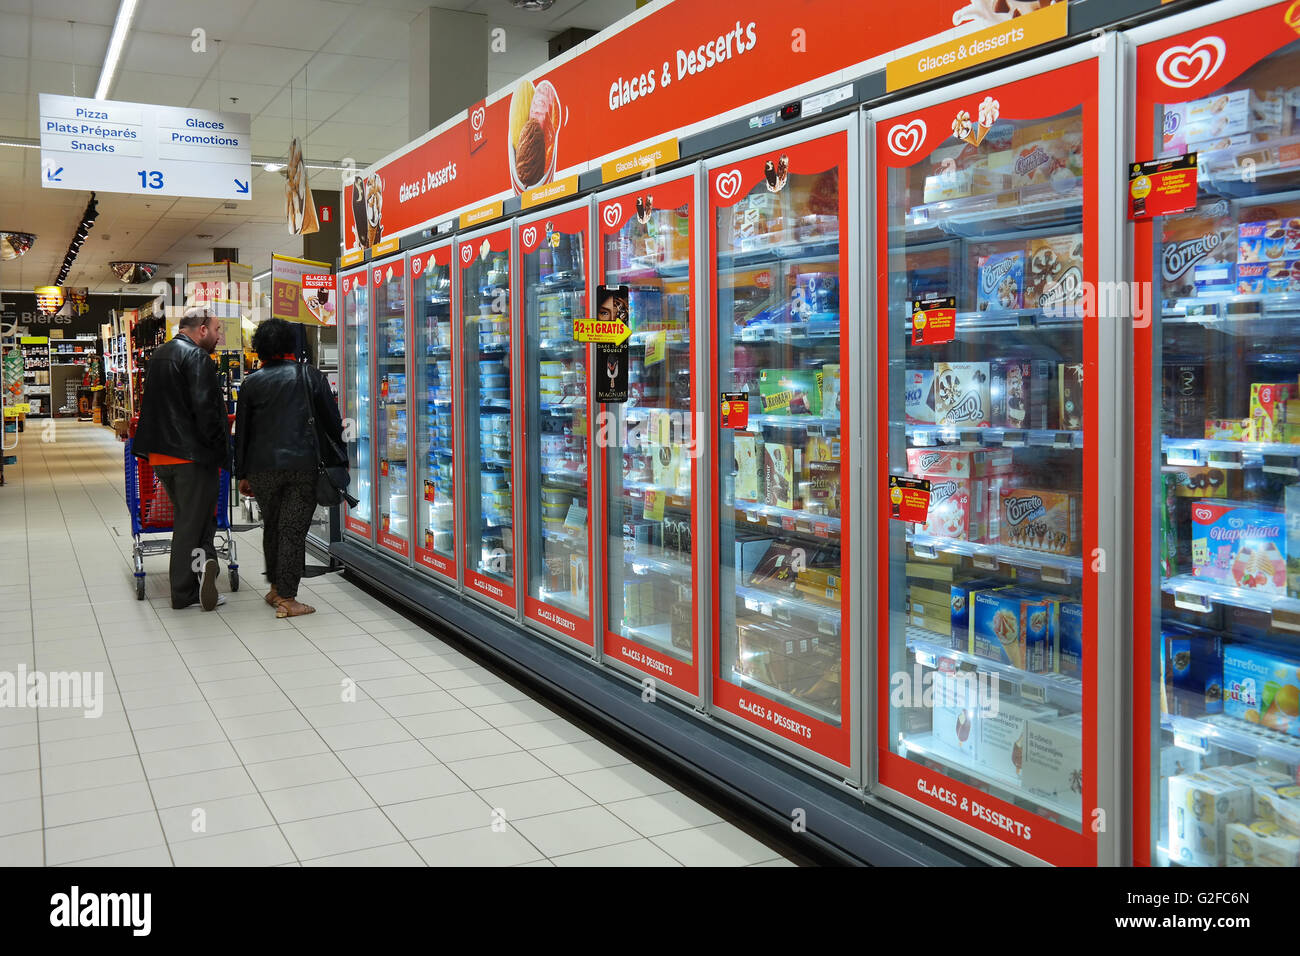 Freezer department with Ice cream of Unilever Heartbrand in a Carrefour Hypermarket. - Stock Image